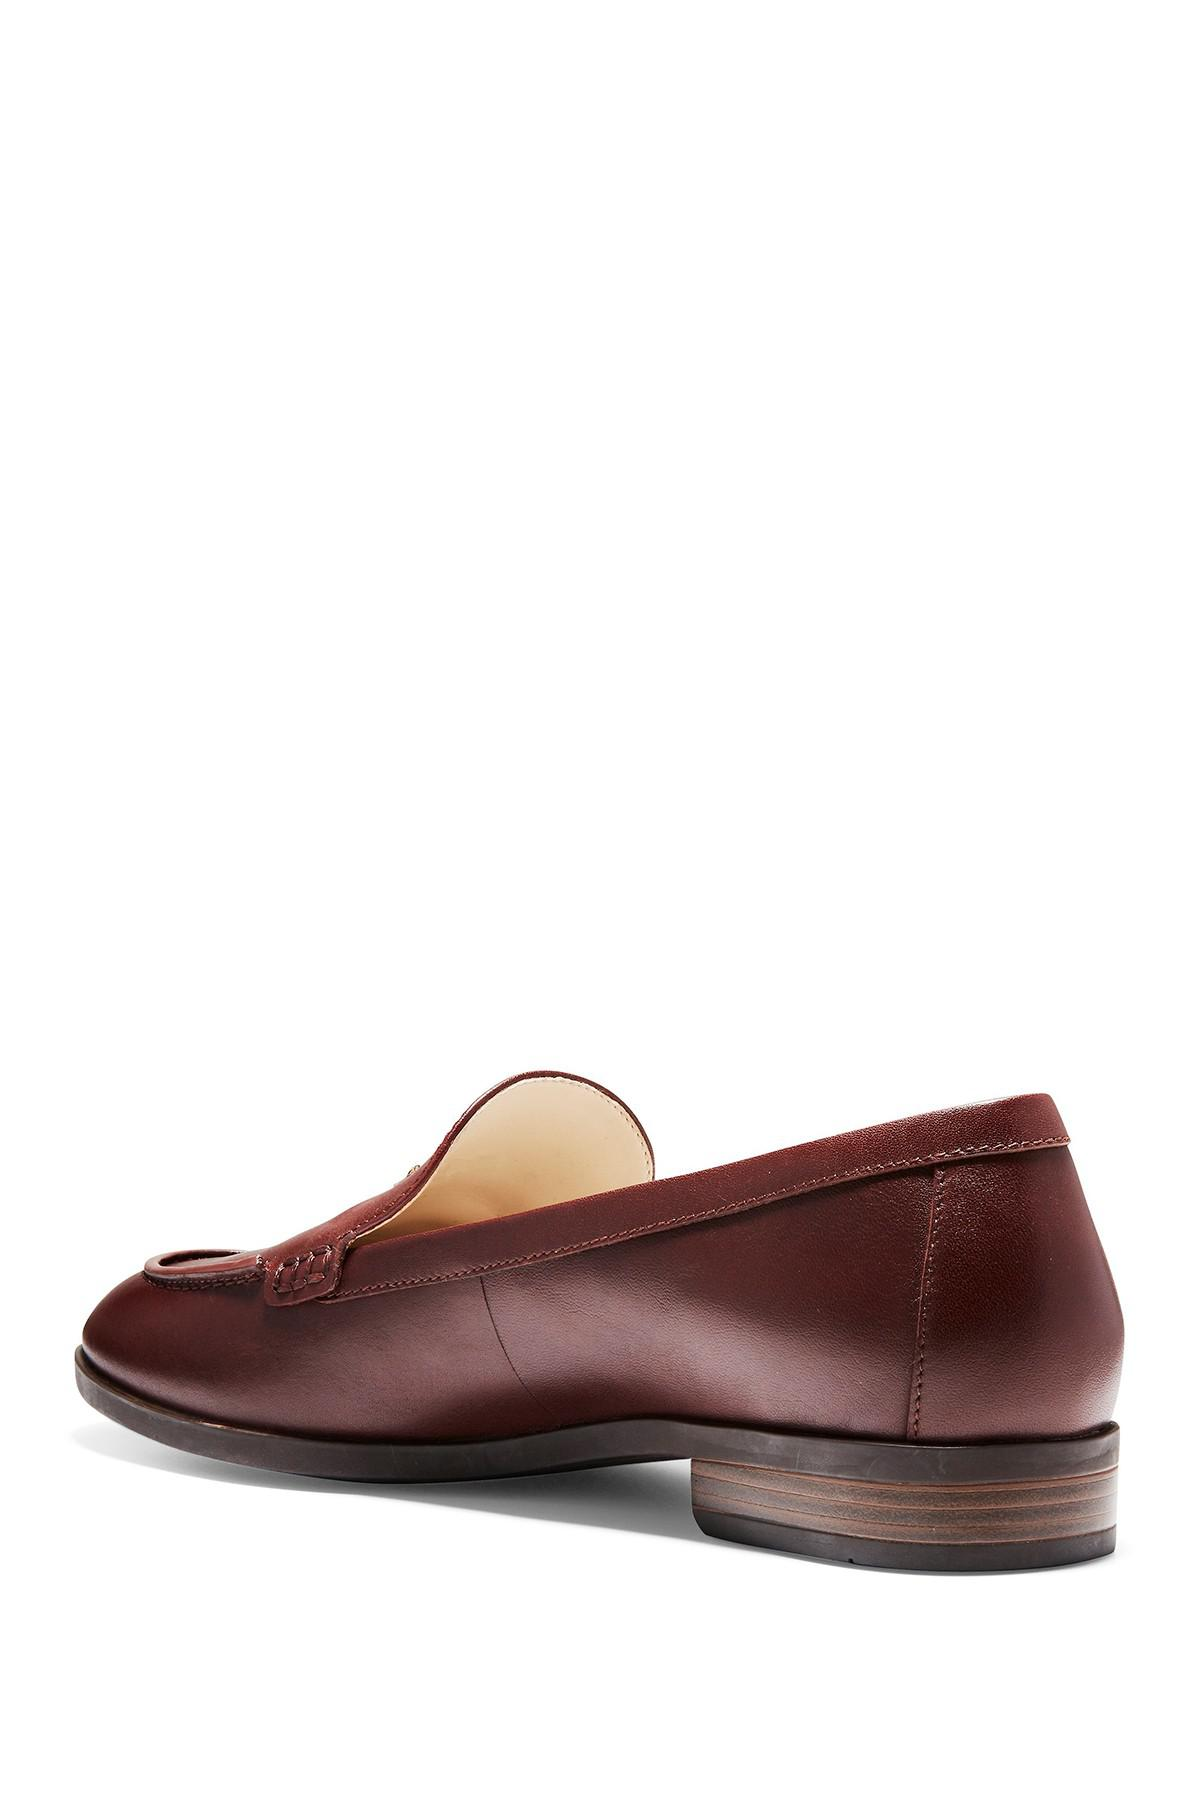 3d443c0fe3c Cole Haan - Multicolor Pinch Lobster Loafer - Lyst. View fullscreen